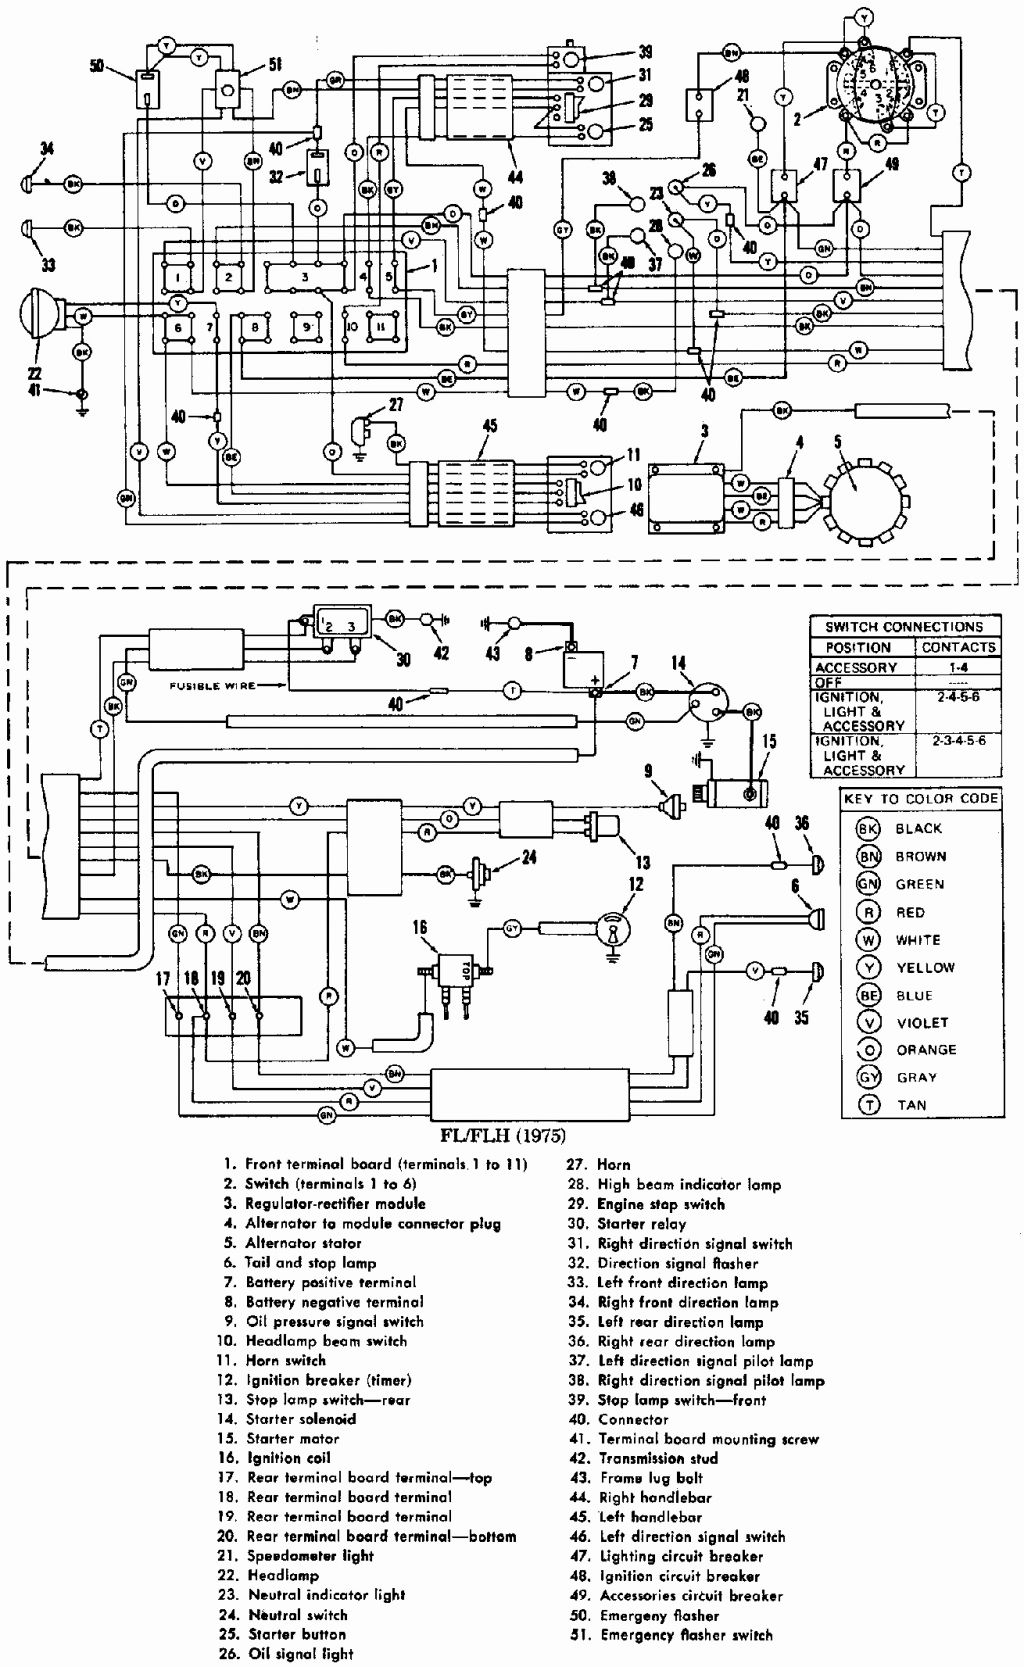 Harley Davidson Radio Wiring | Wiring Diagram on